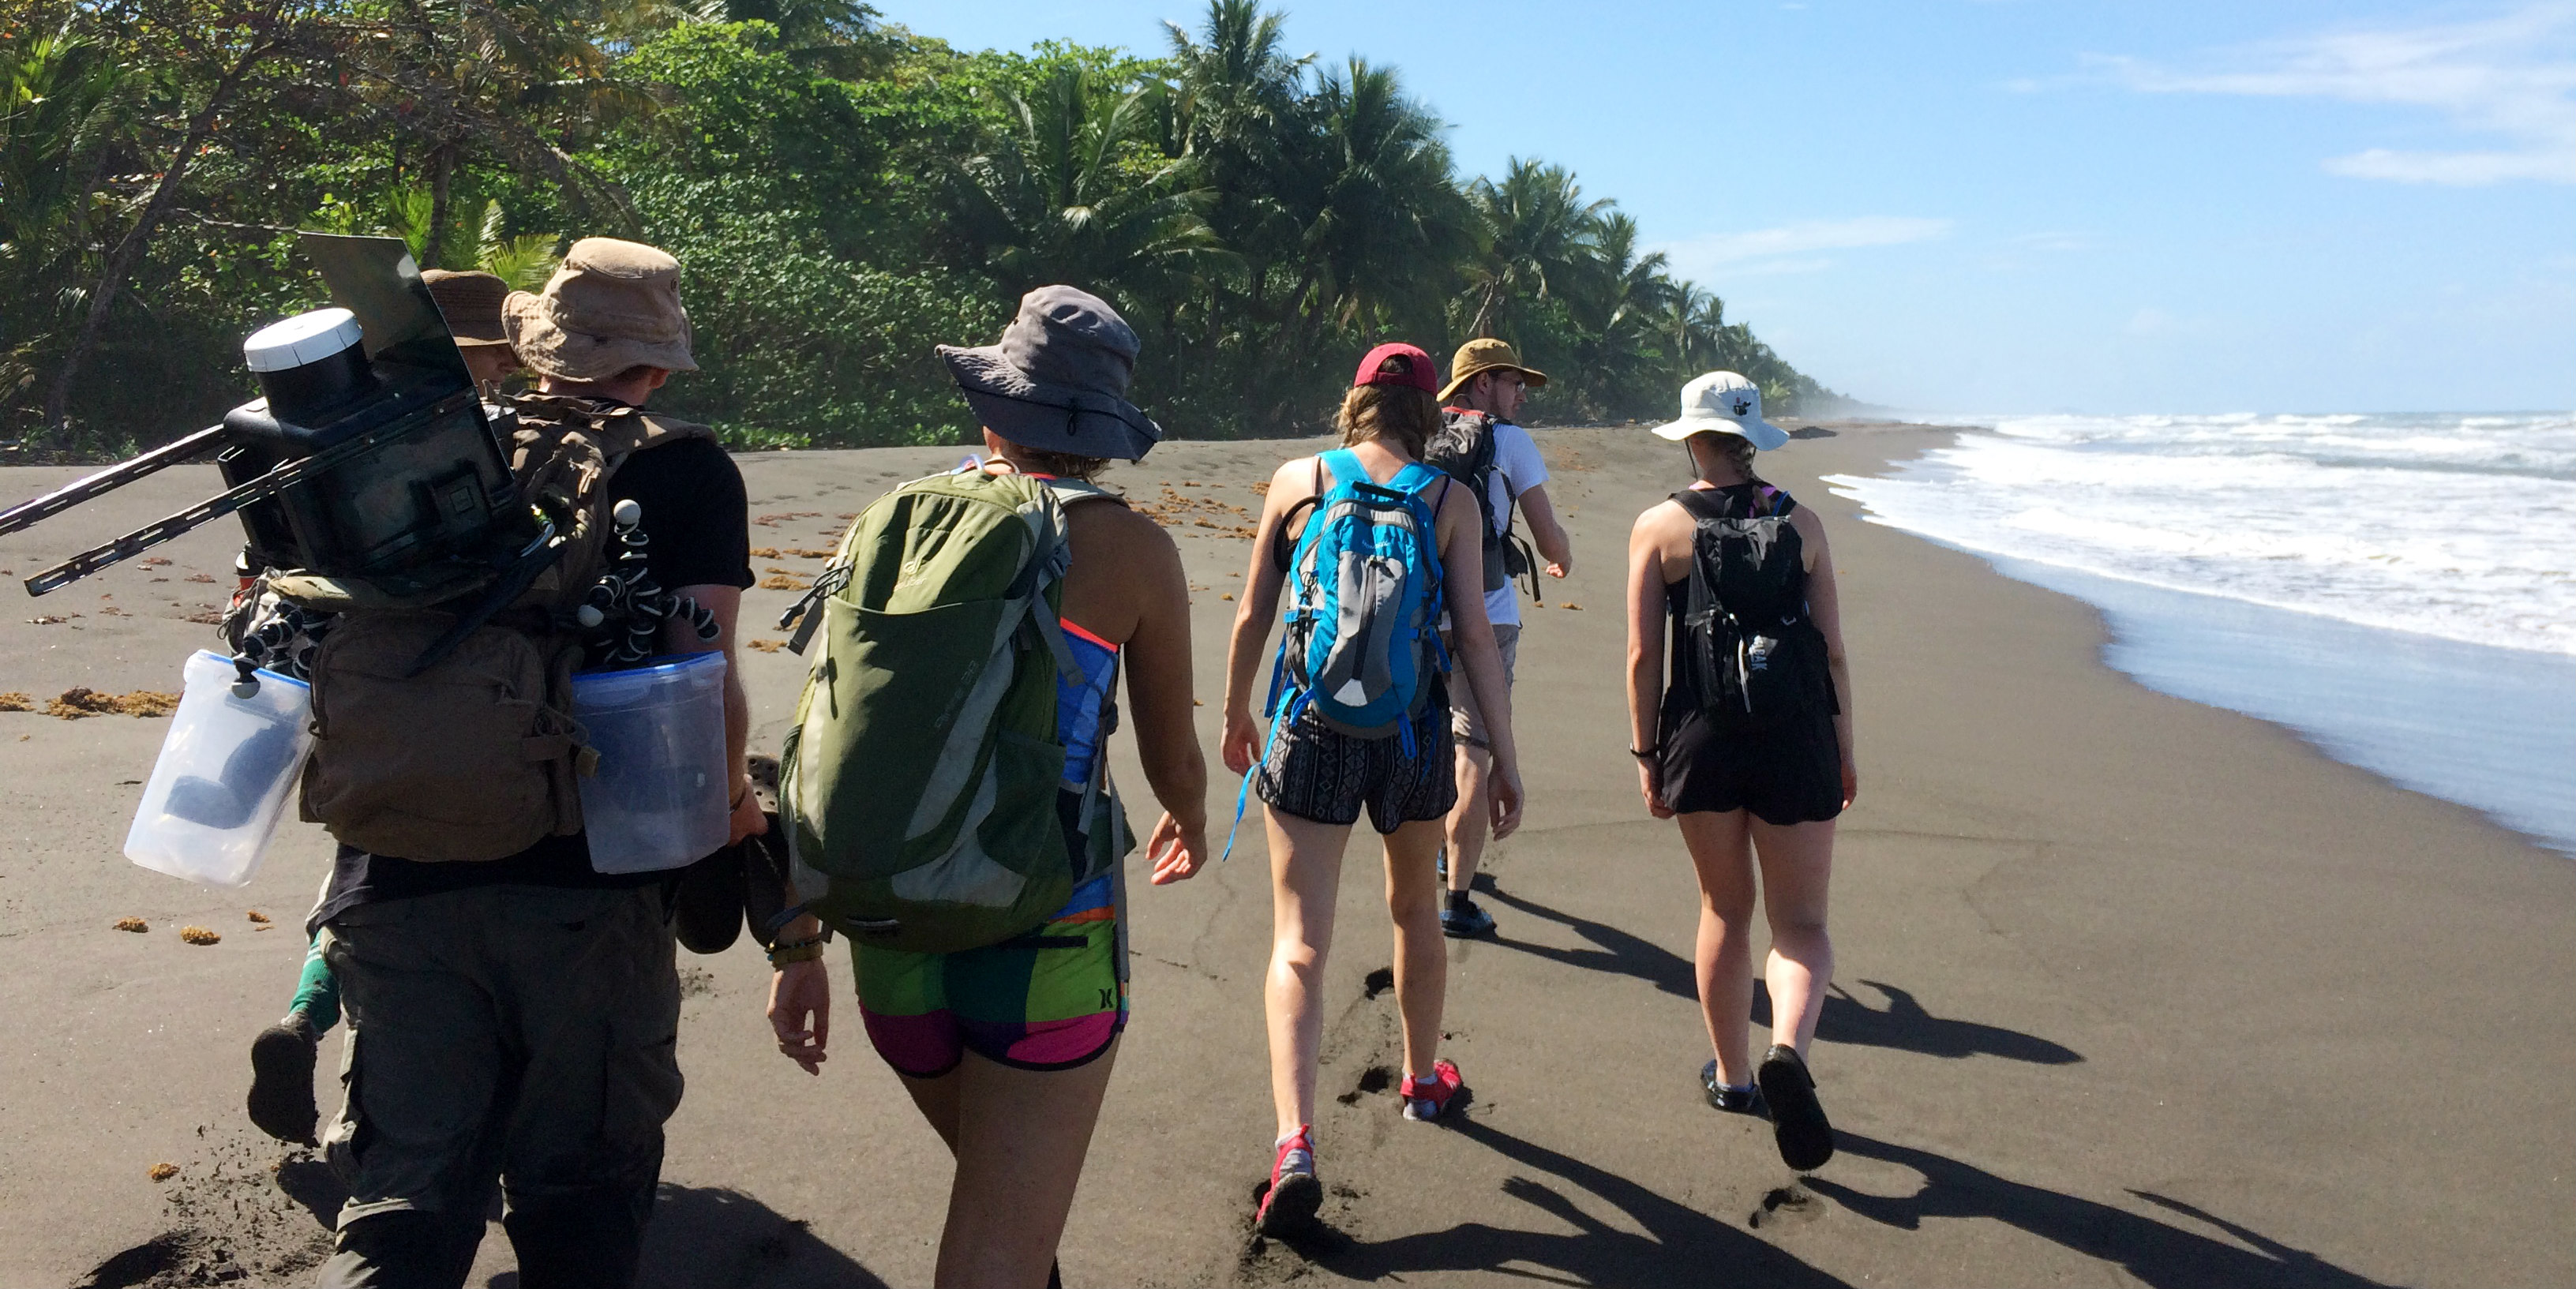 Participants start on a beach patrol, searching for signs of jaguars, or Costa Rica sea turtles.